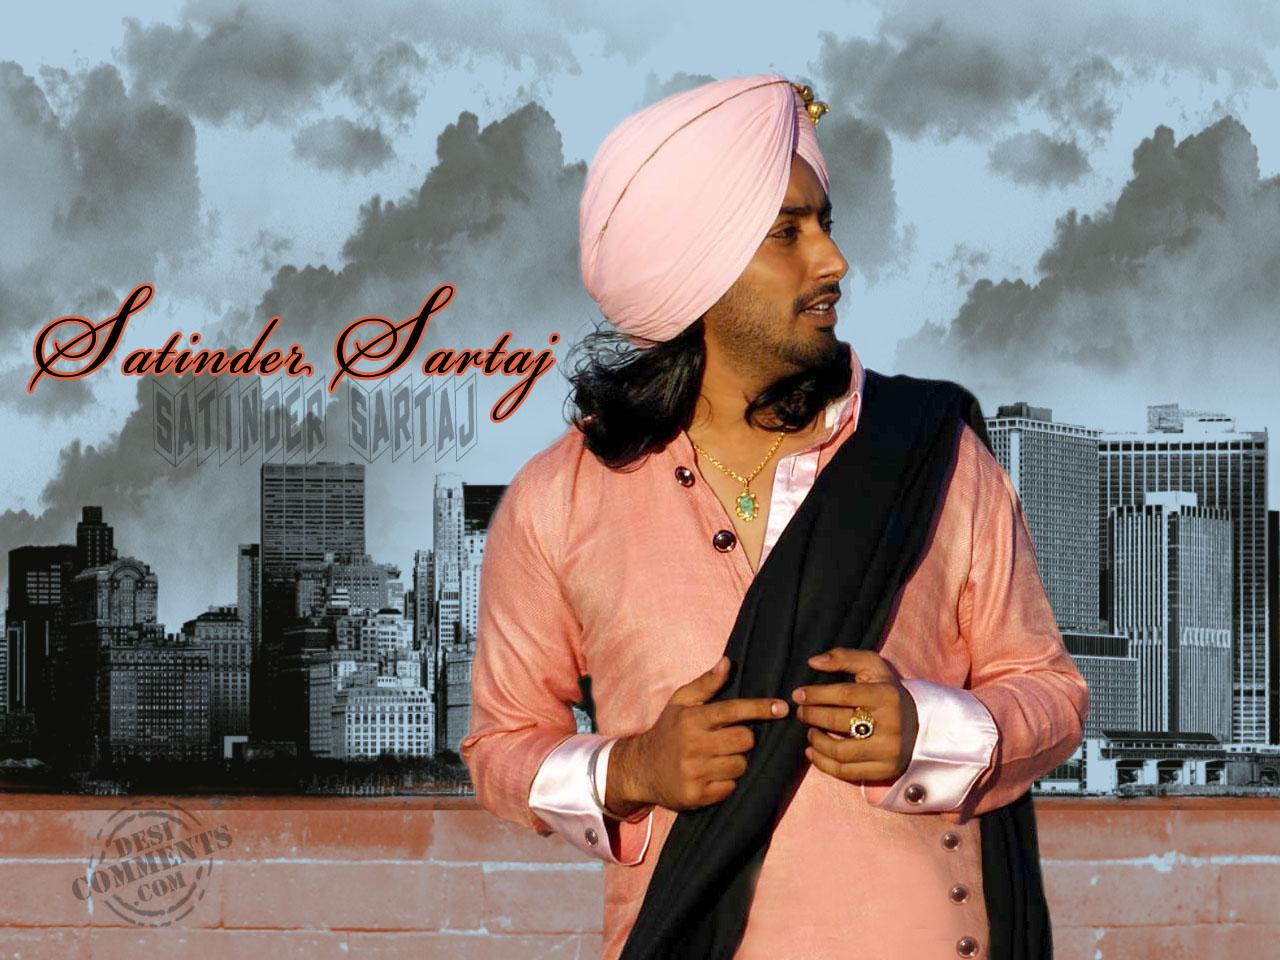 Satinder sartaj mix all songs collection youtube.